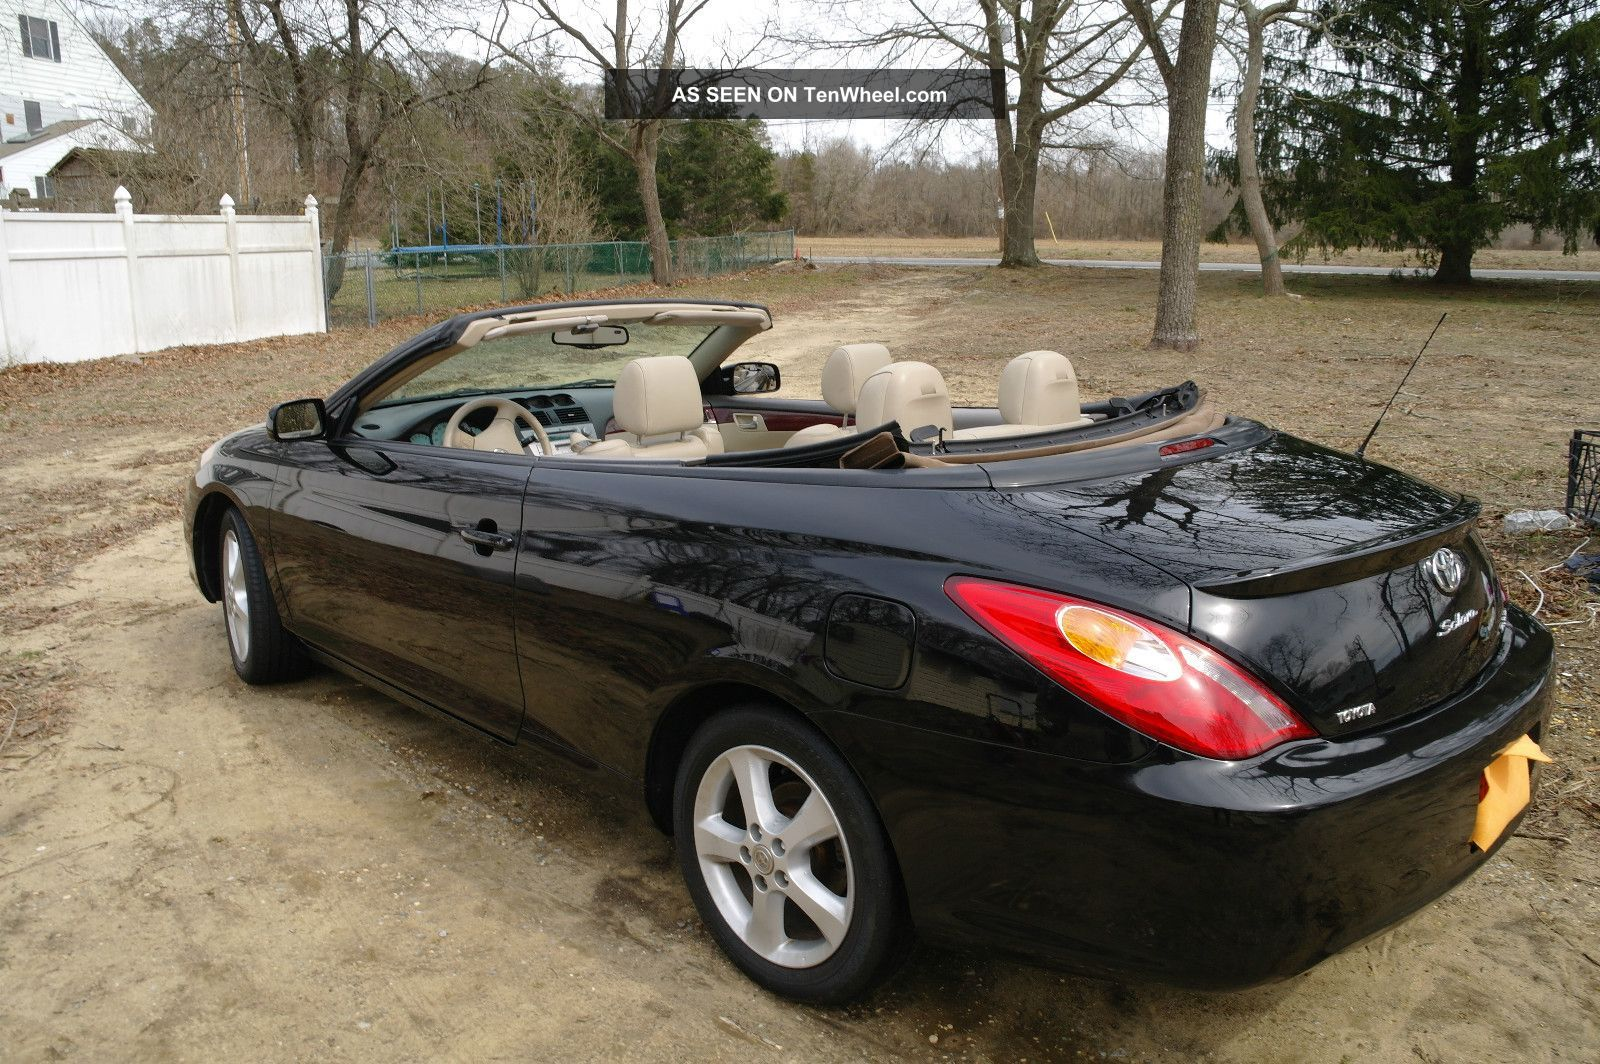 2008 Toyota Solara I Loved My Little Convertible But It Was Hard To Get In And Out Of